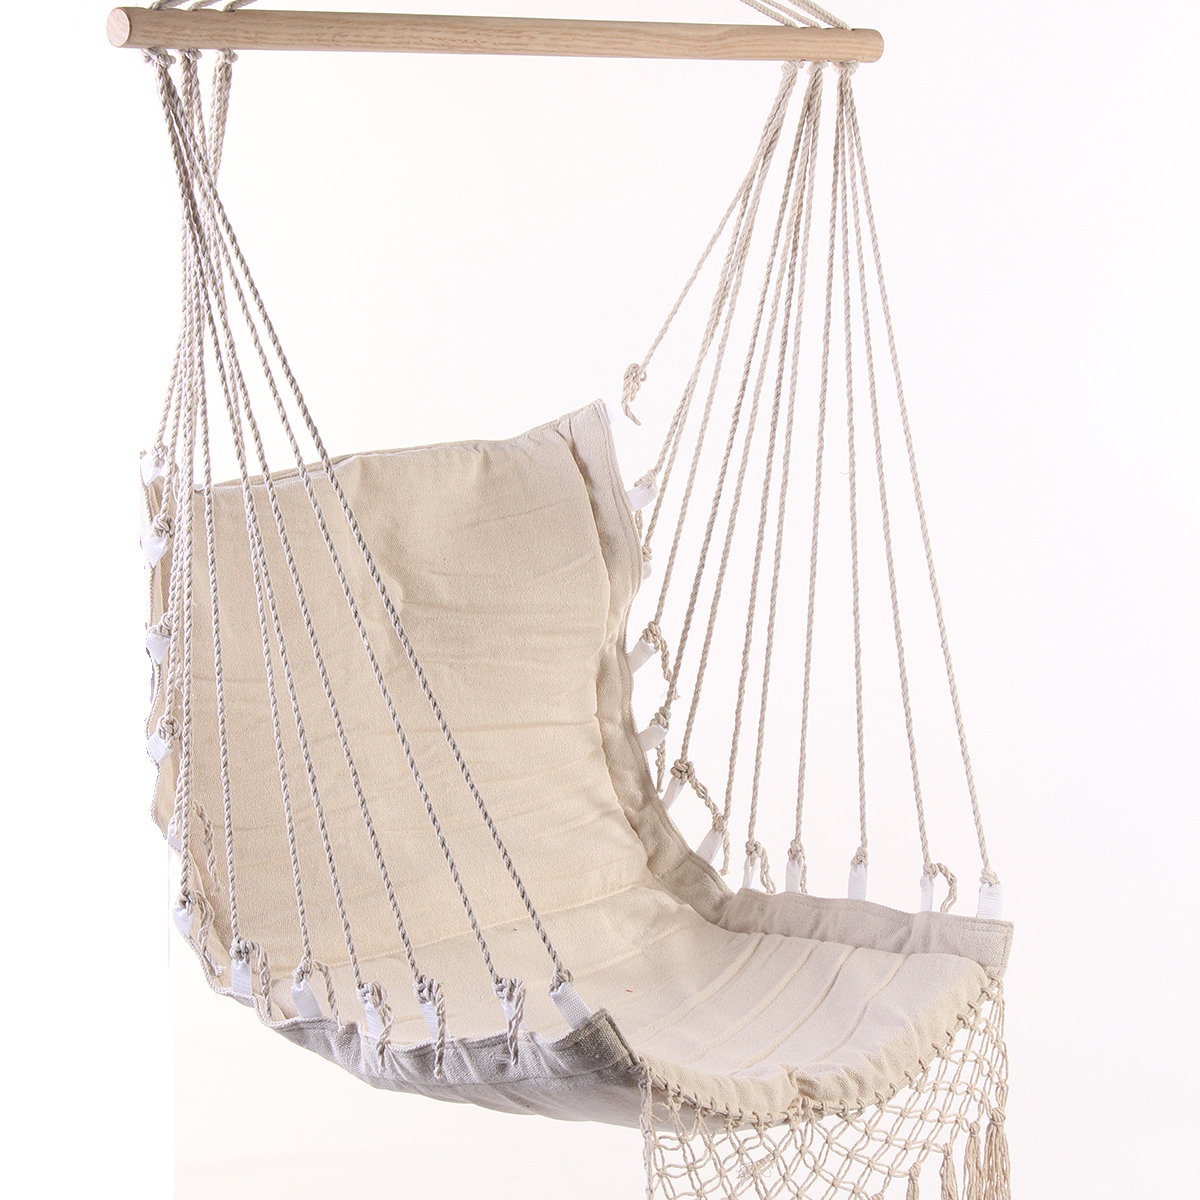 Nordic Style Deluxe Hammock Outdoor Indoor Garden Dormitory Bedroom Hanging Chair For Child Adult Swinging Single Safety Chair chair outdoor garden hammock net indoor hanging chair